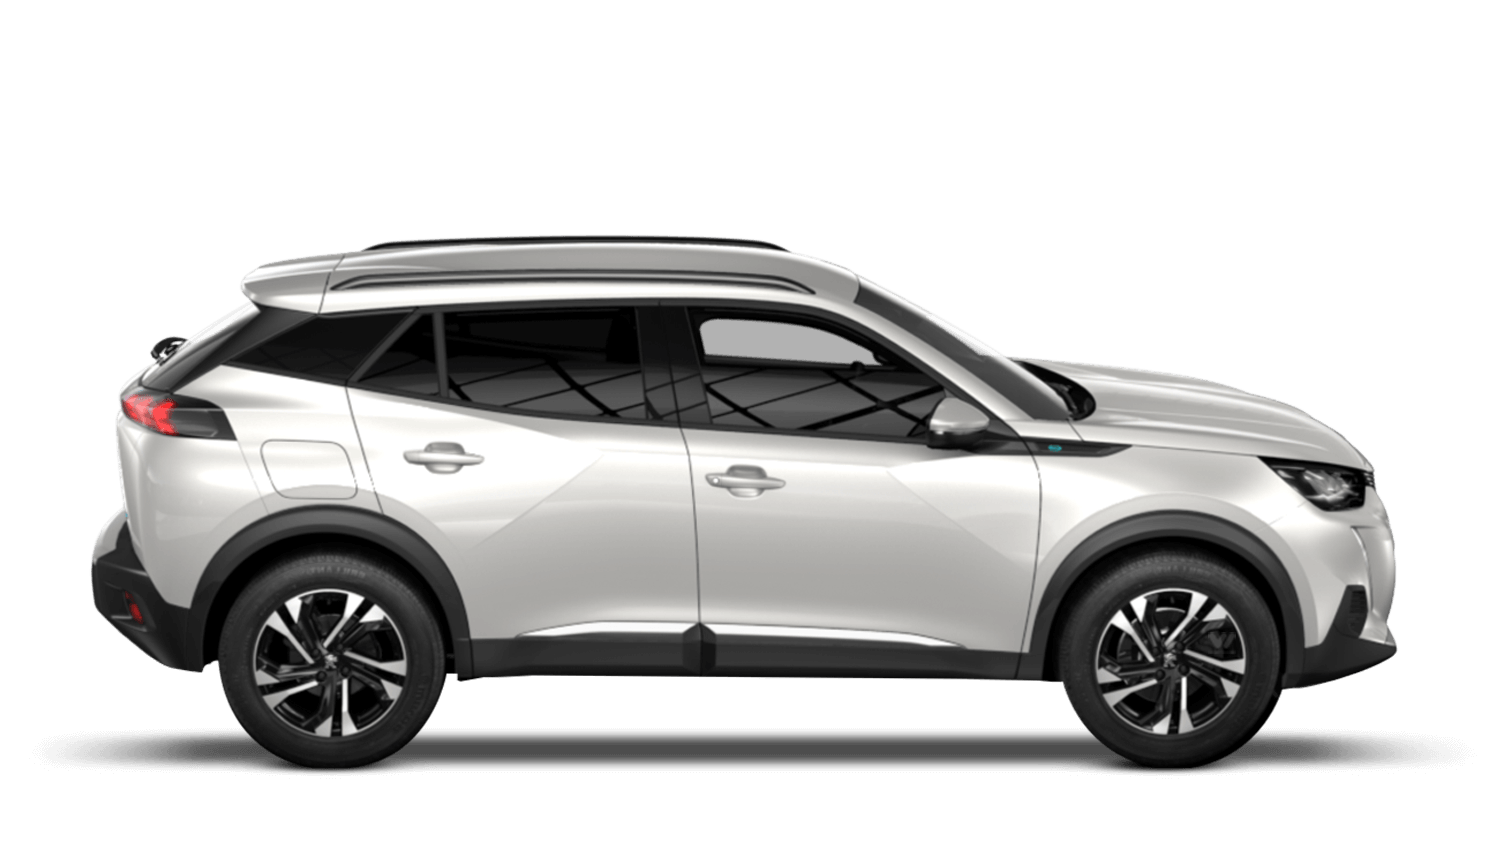 Pearlescent White All-new Peugeot e-2008 SUV